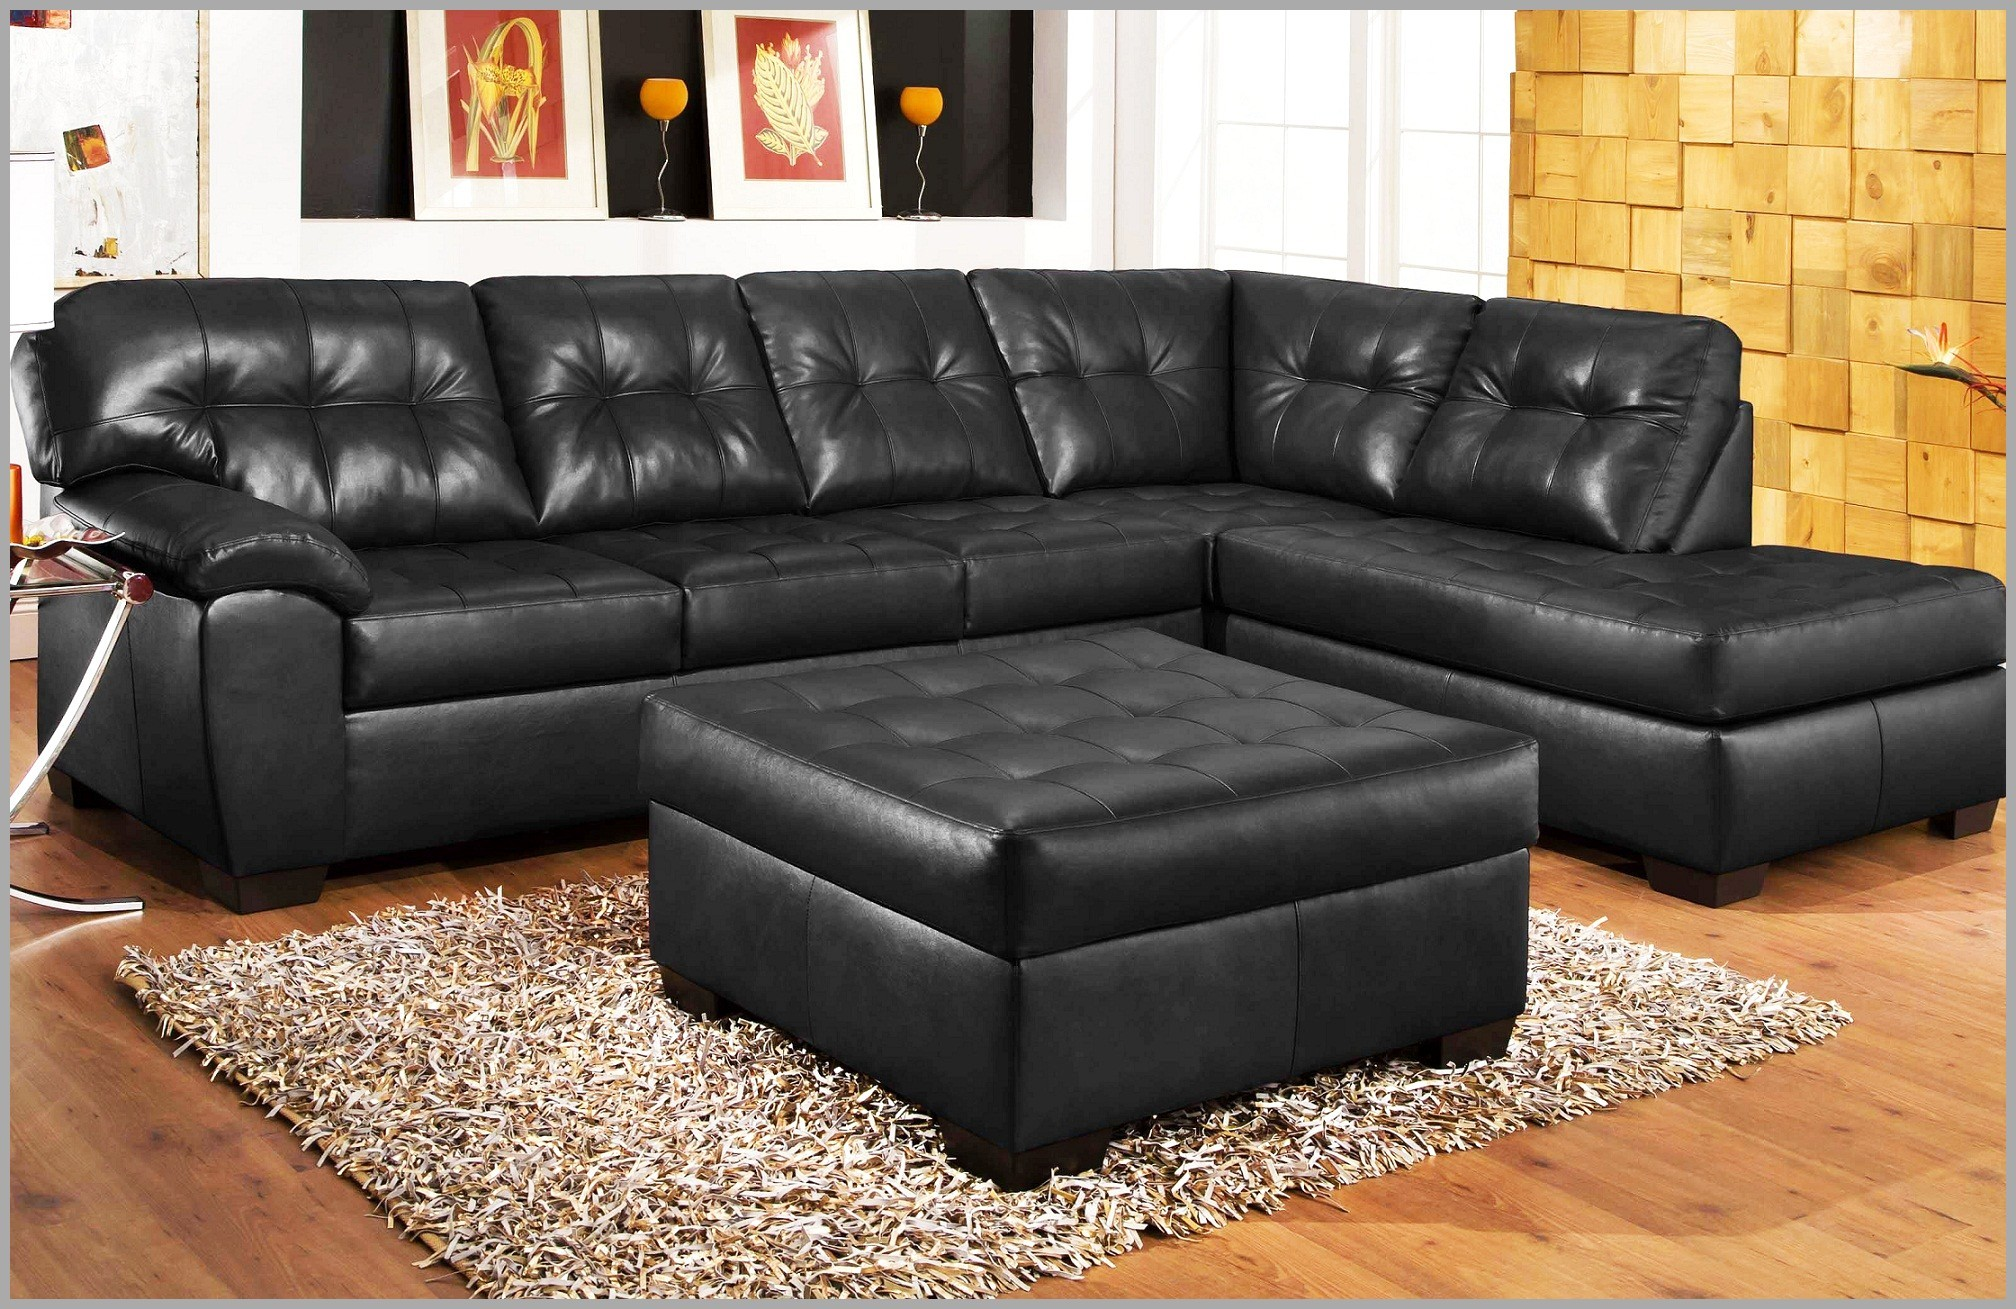 Rooms to Go Sectional sofas Superb Marvelous Rooms to Go Sectional sofa Decorative sofa Ideas Image